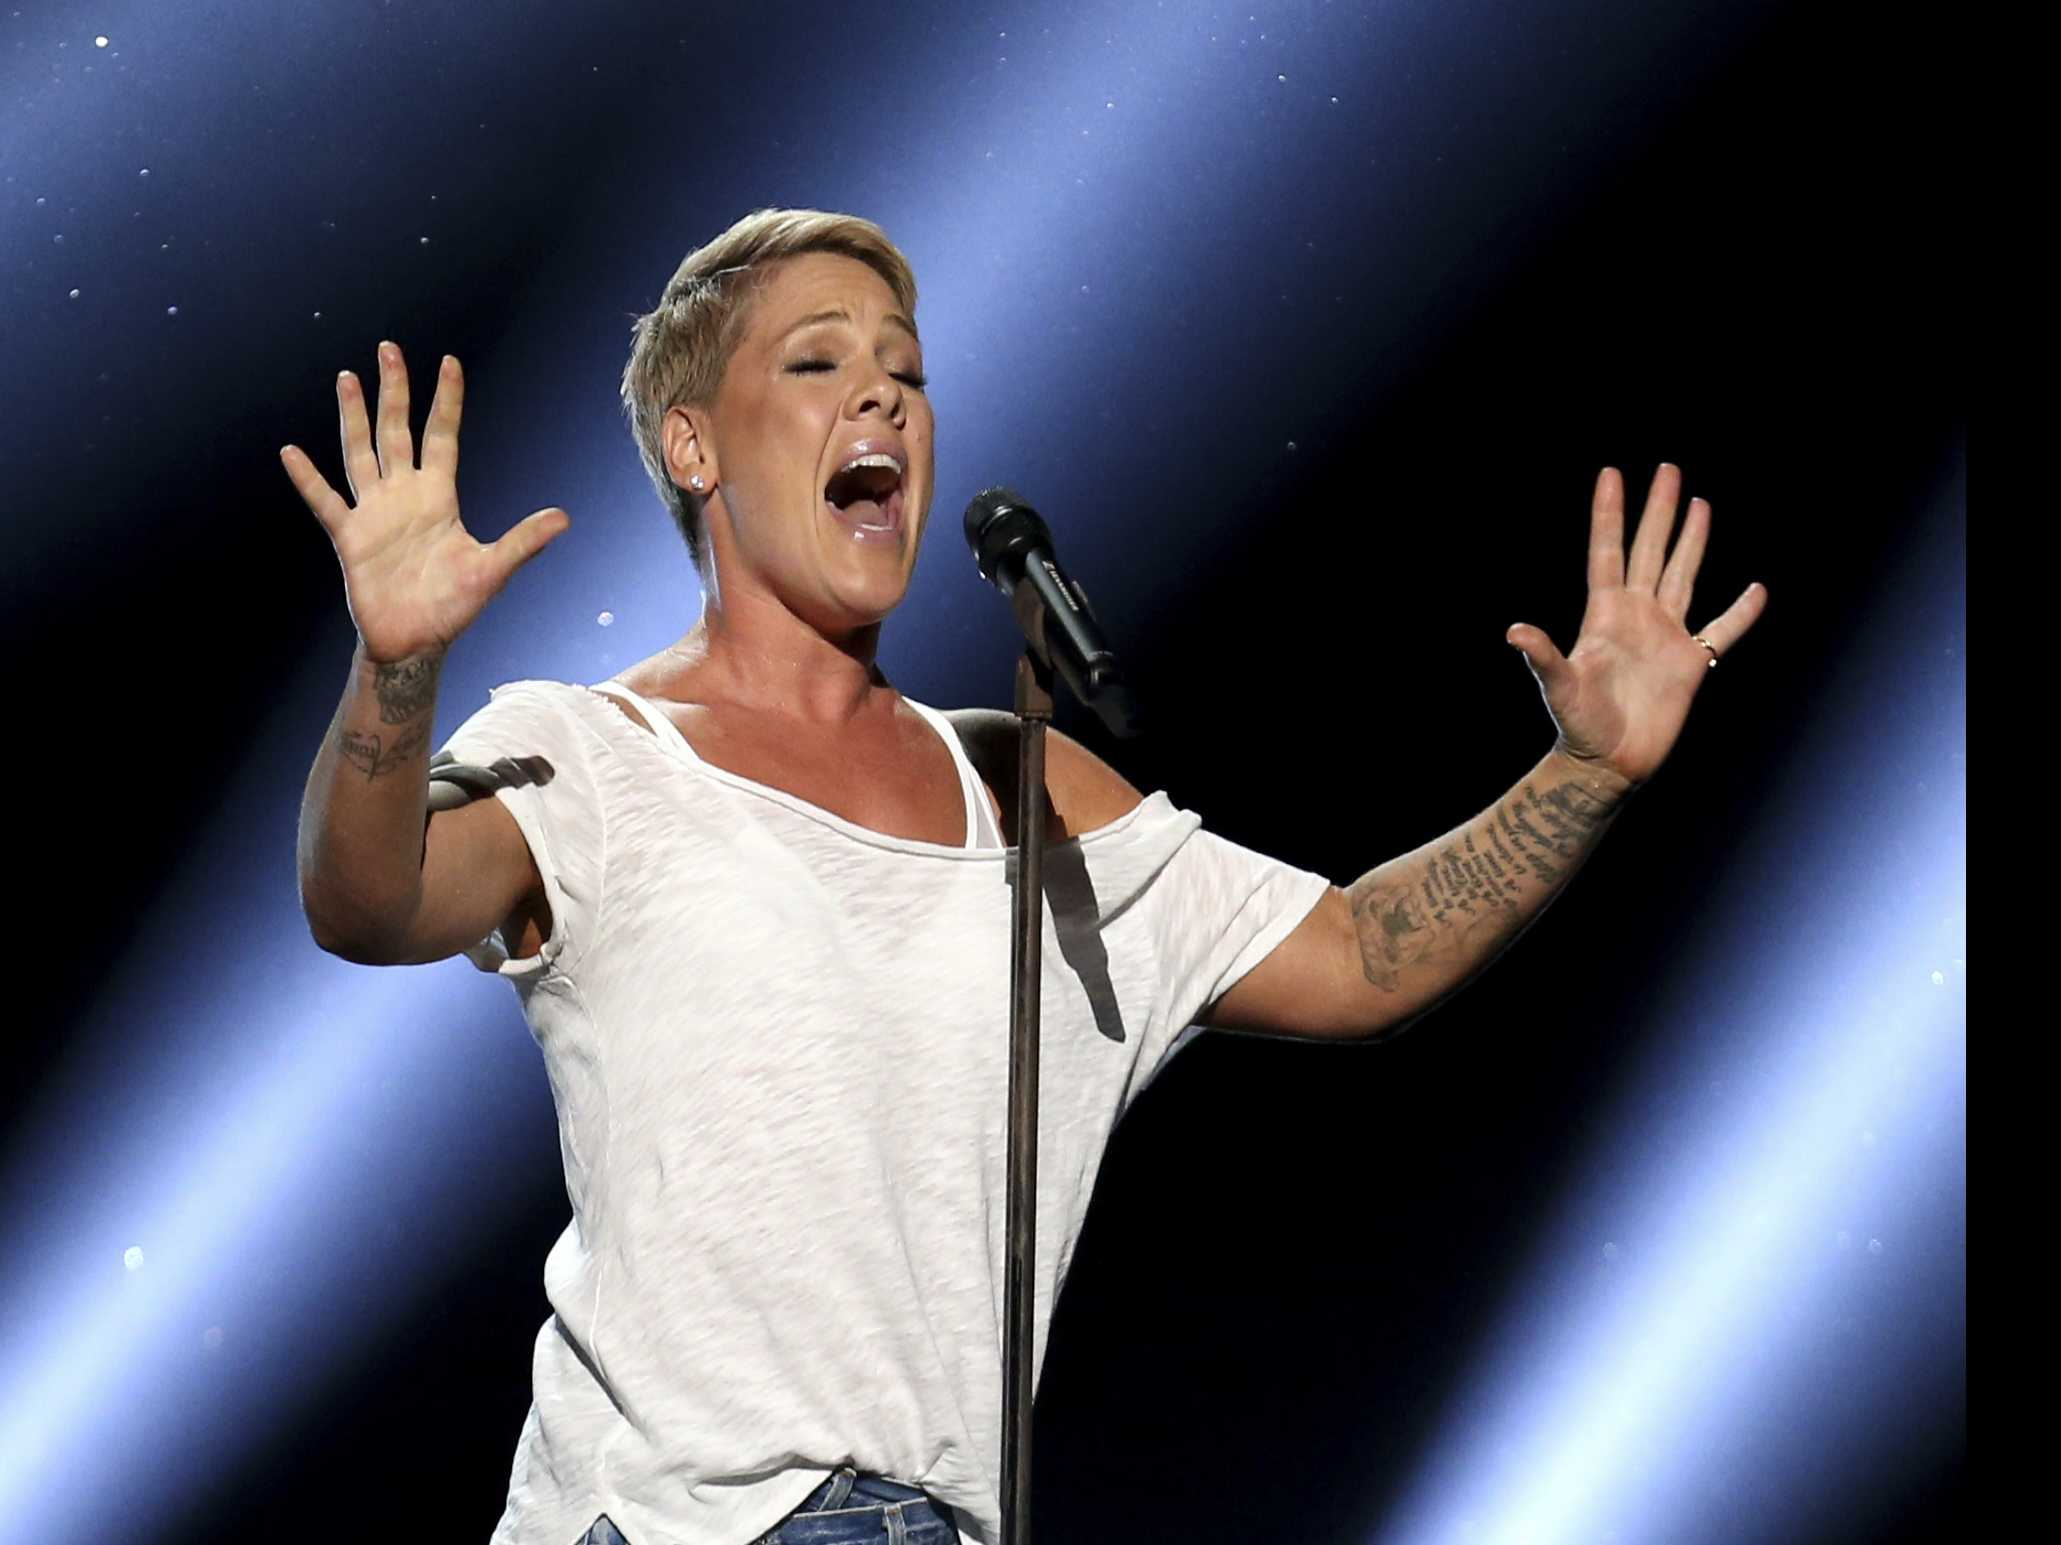 P!nk in Sydney Hospital with Stomach Virus, Cancels 3rd Show